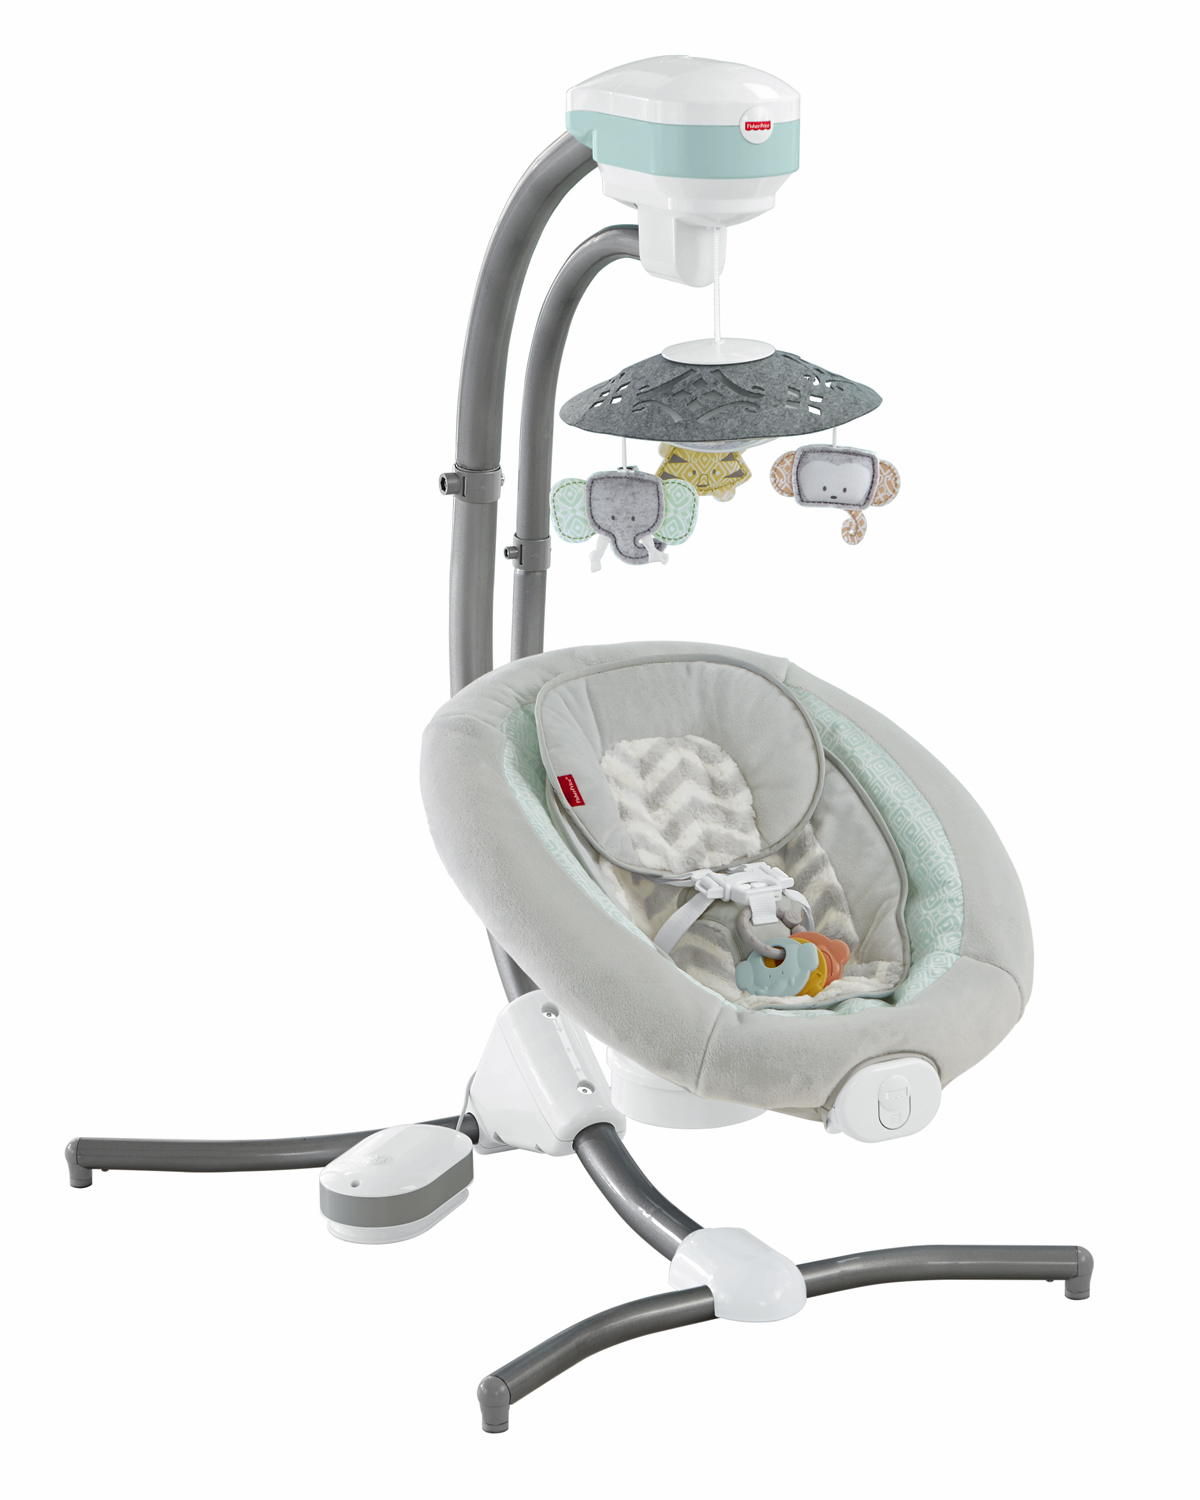 mattel and fisher price consumer relations support center recall